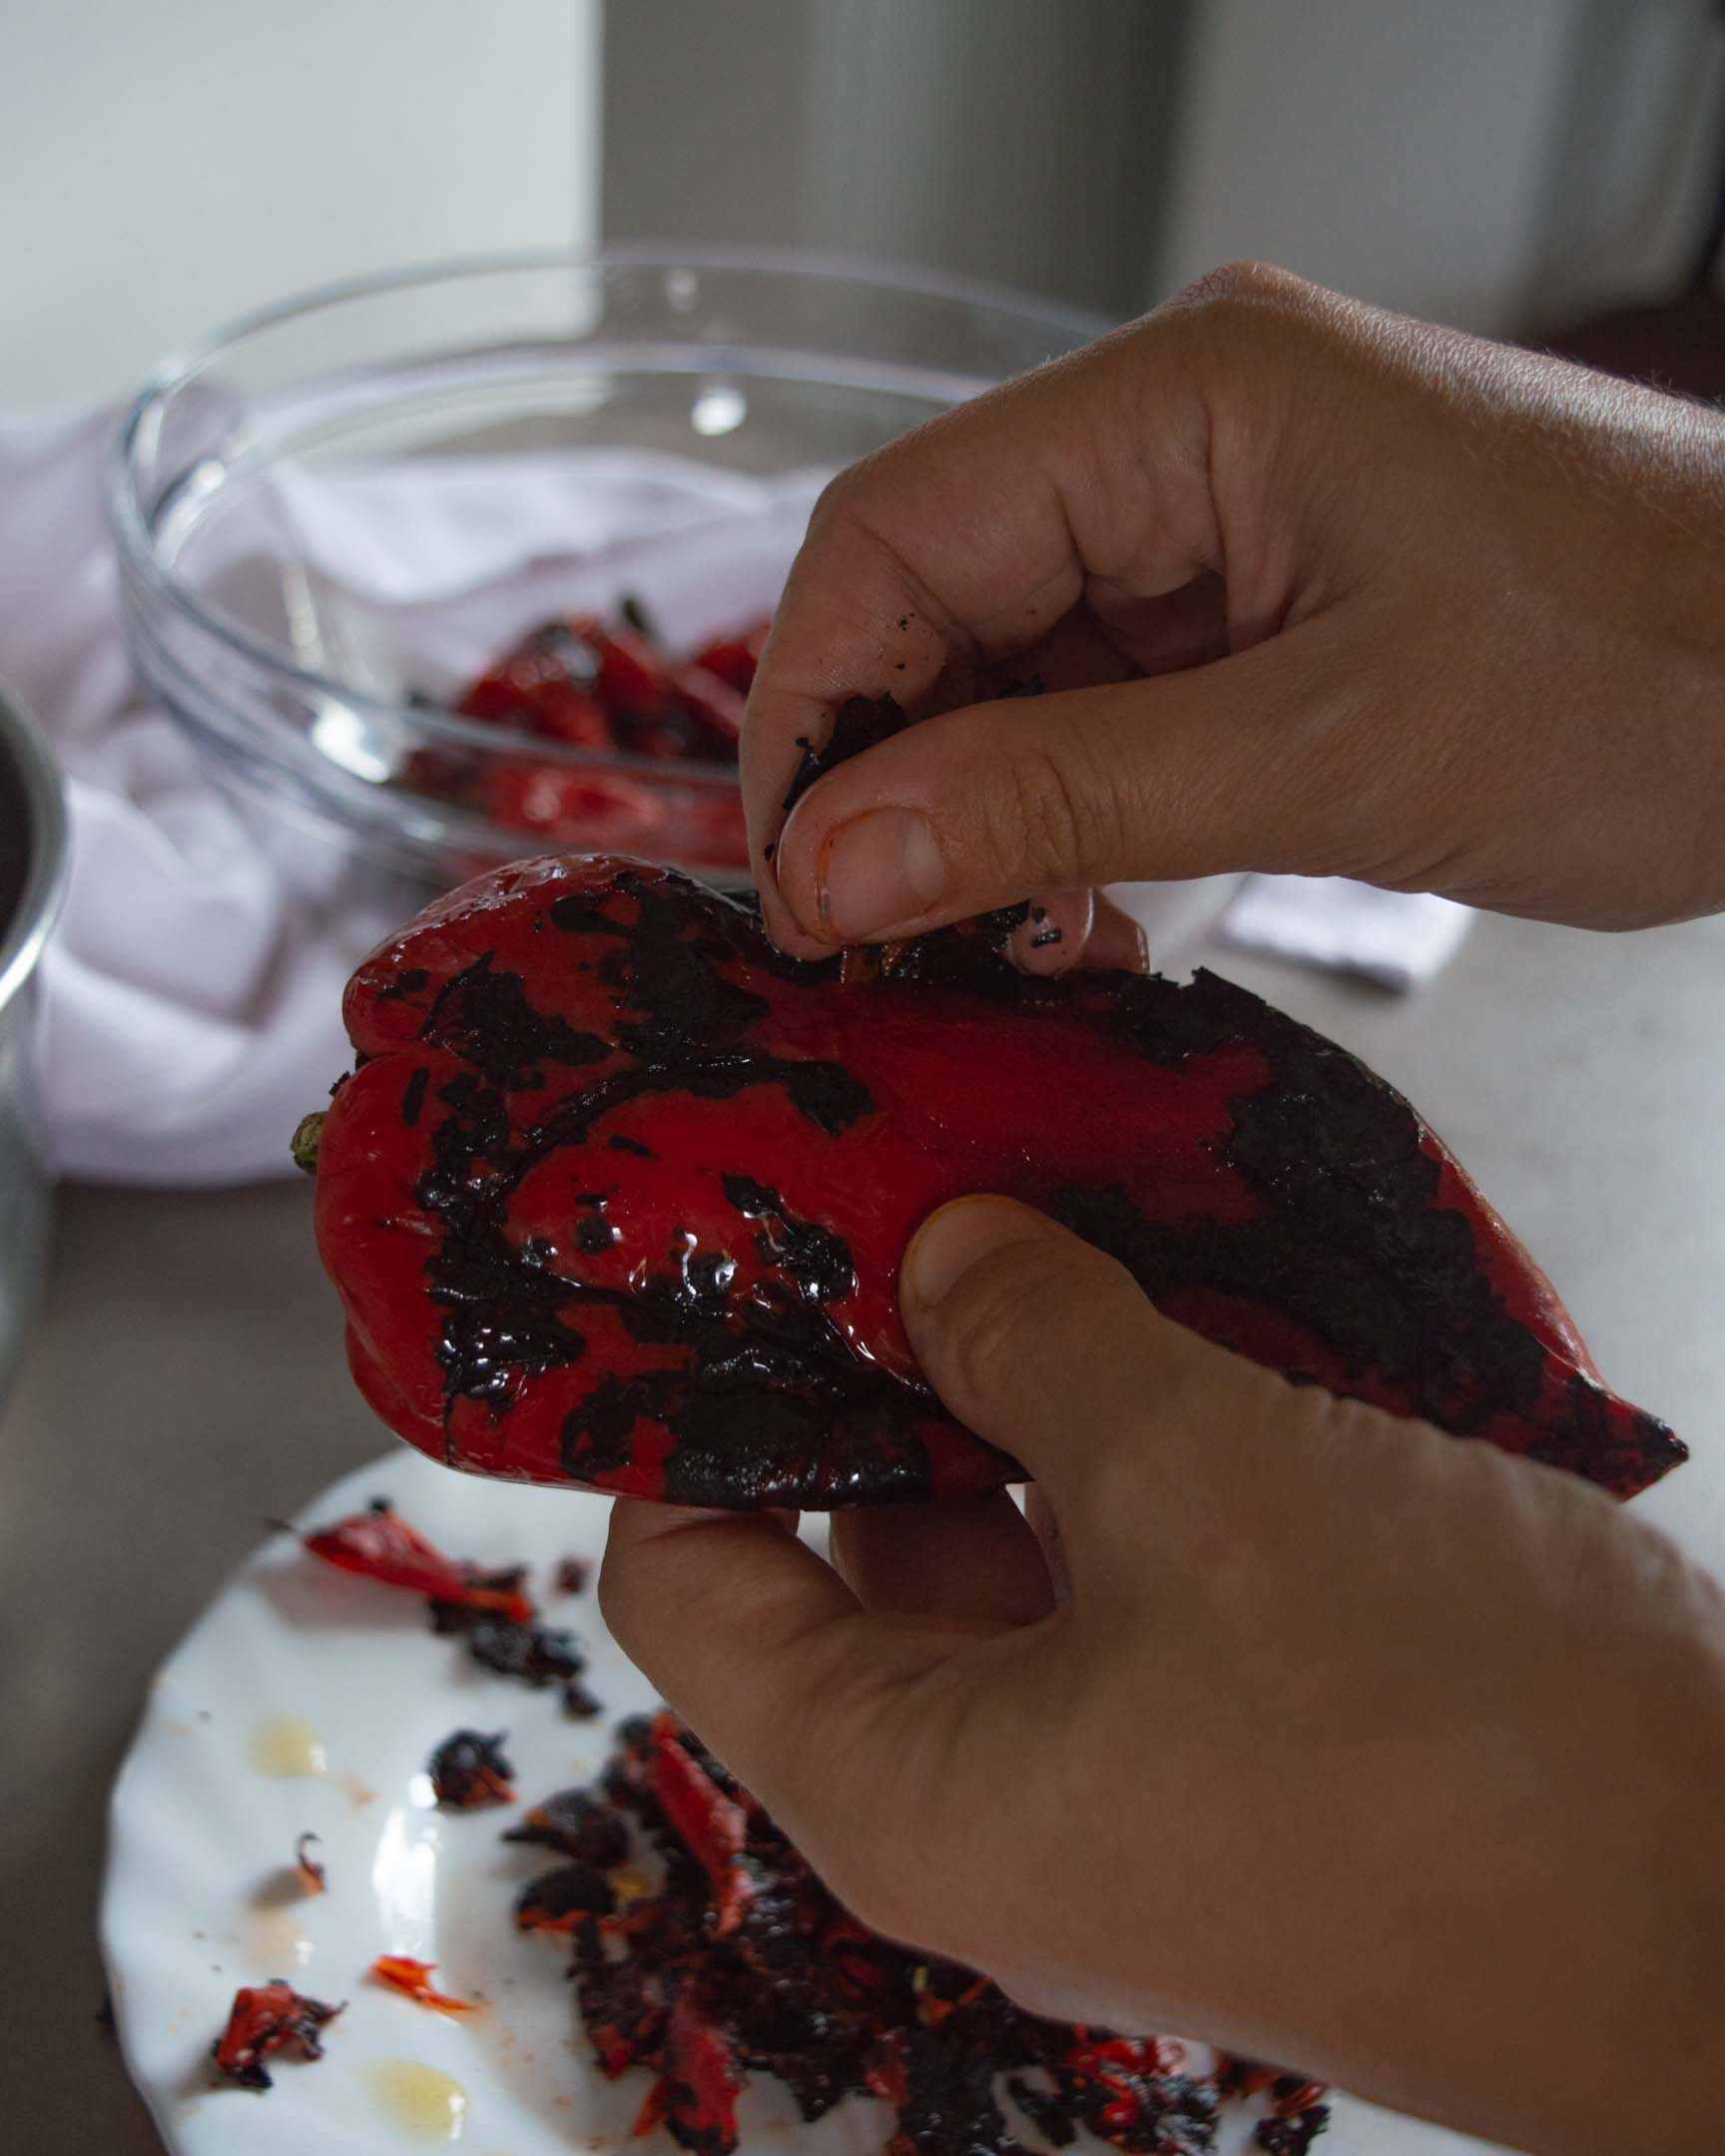 peeling of roasted red peppers